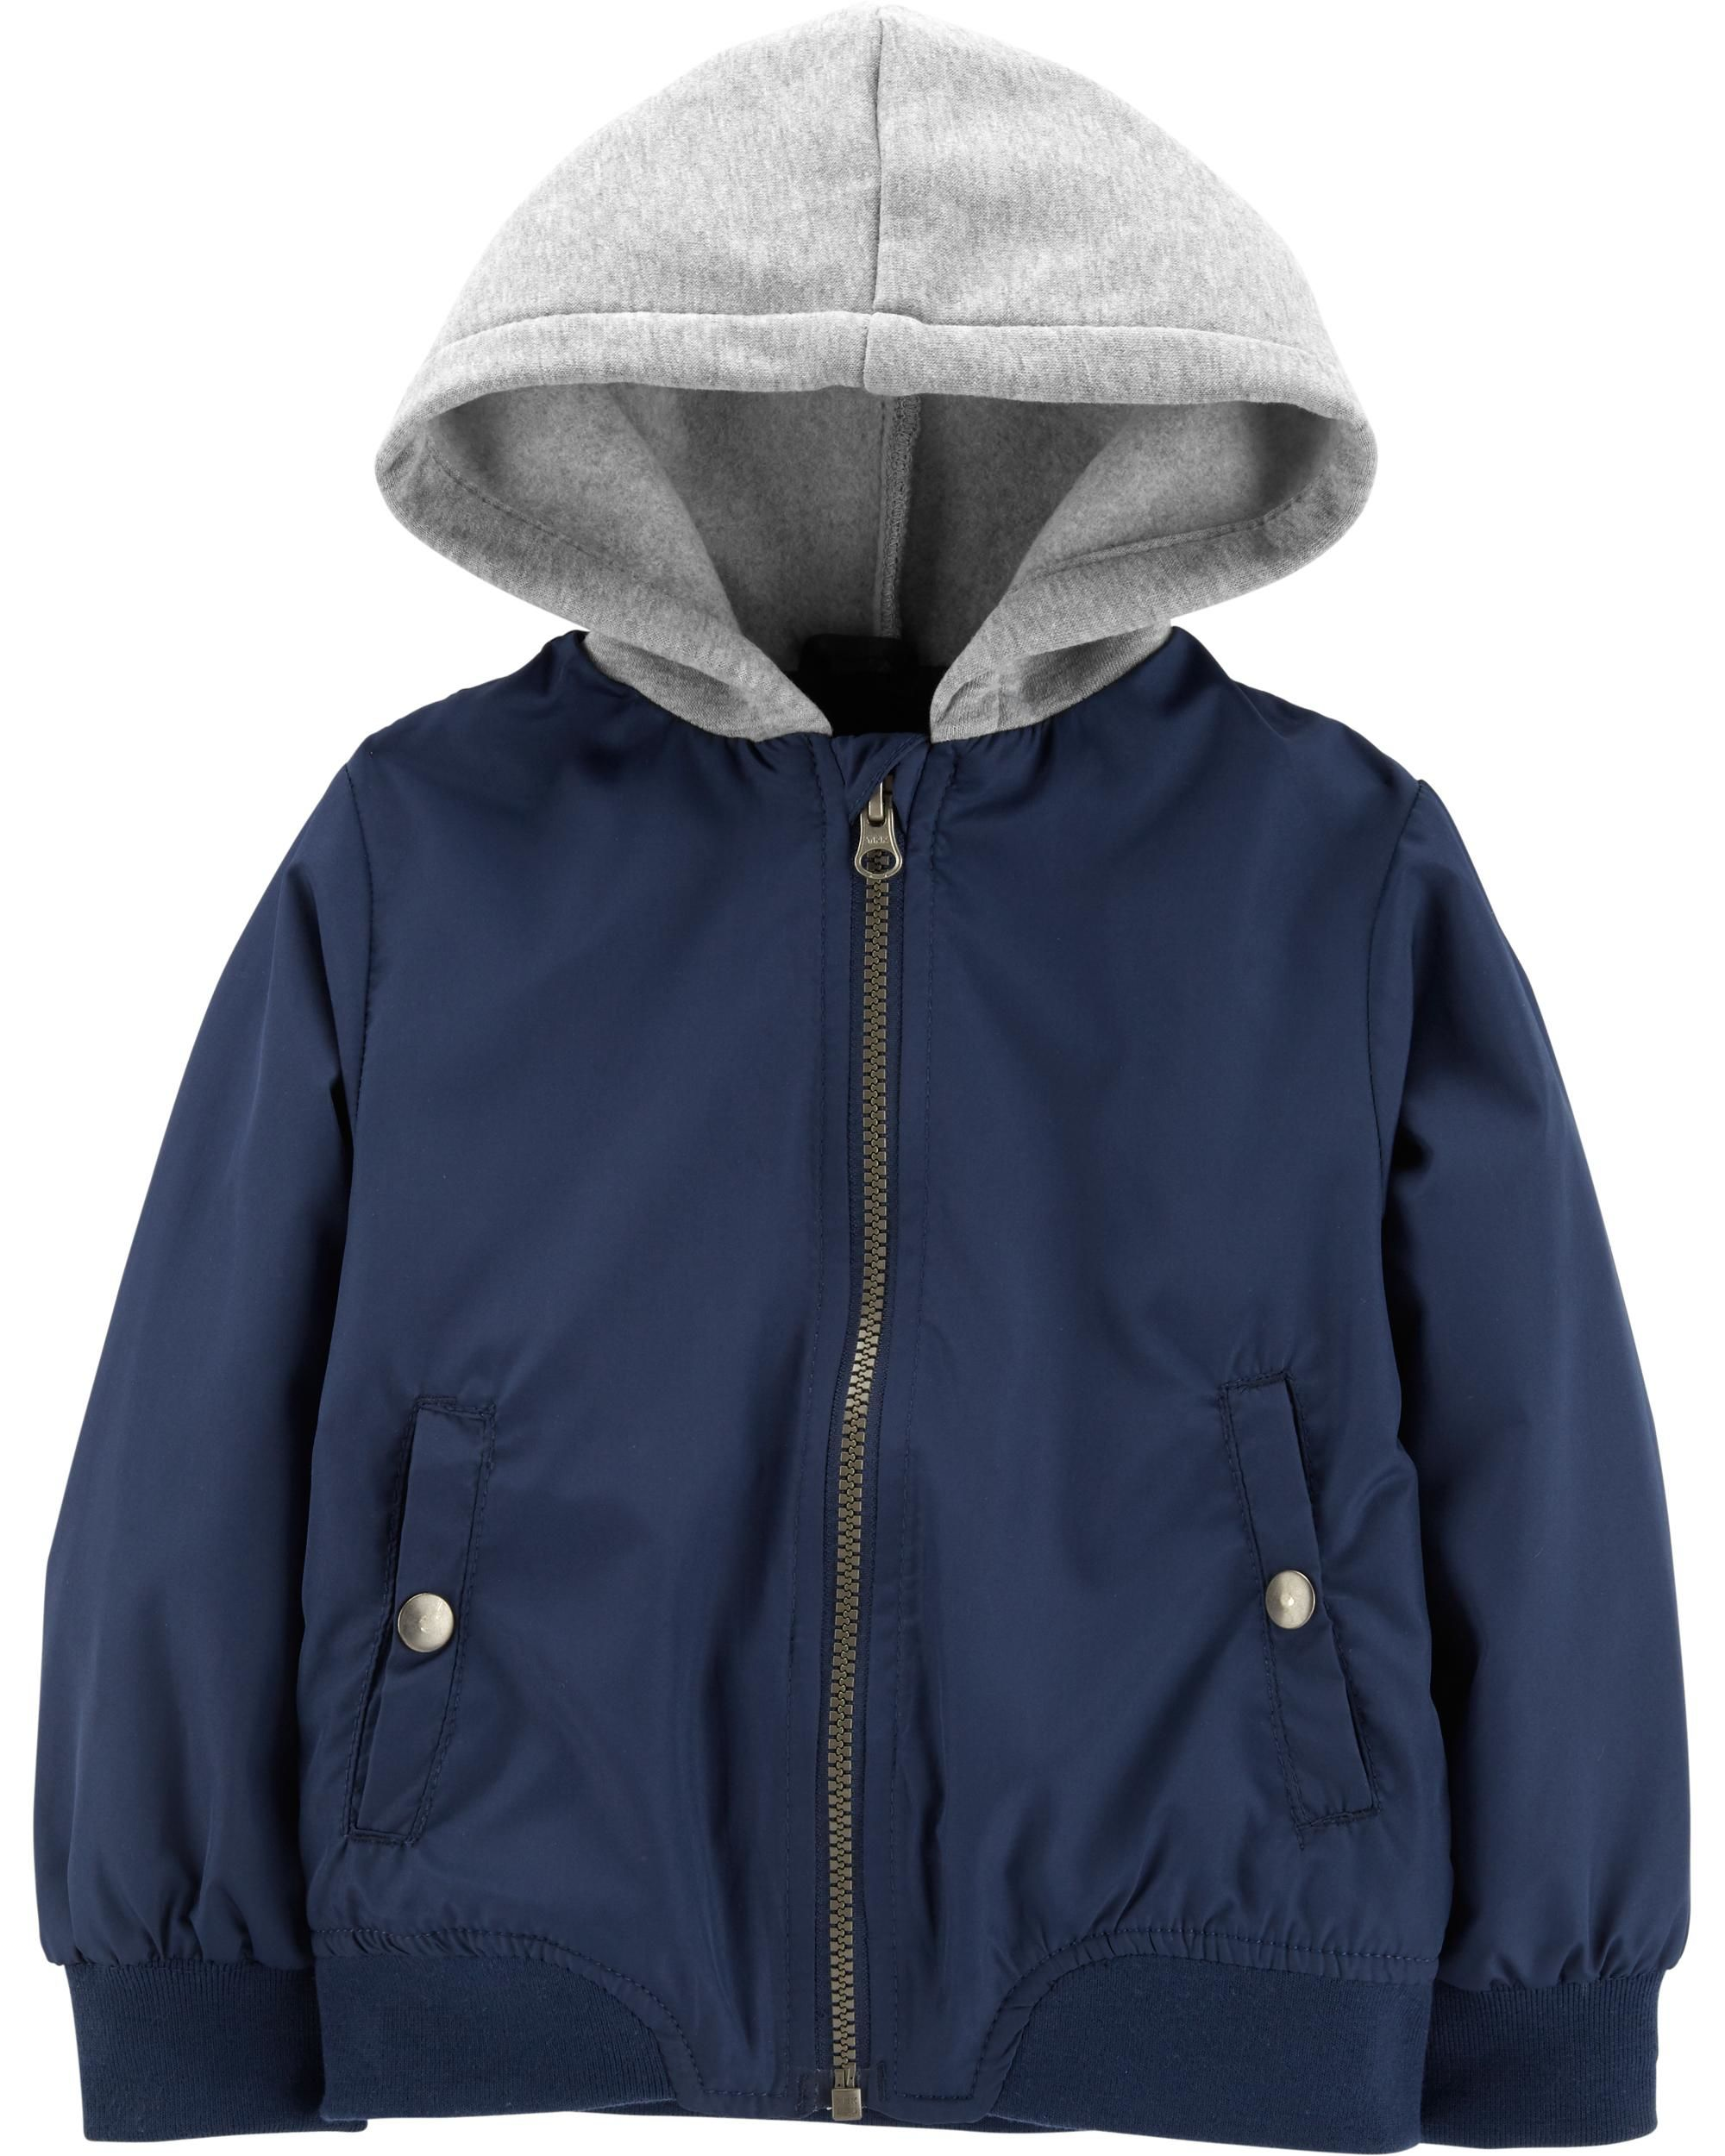 Hooded Bomber Jacket | Carters.com